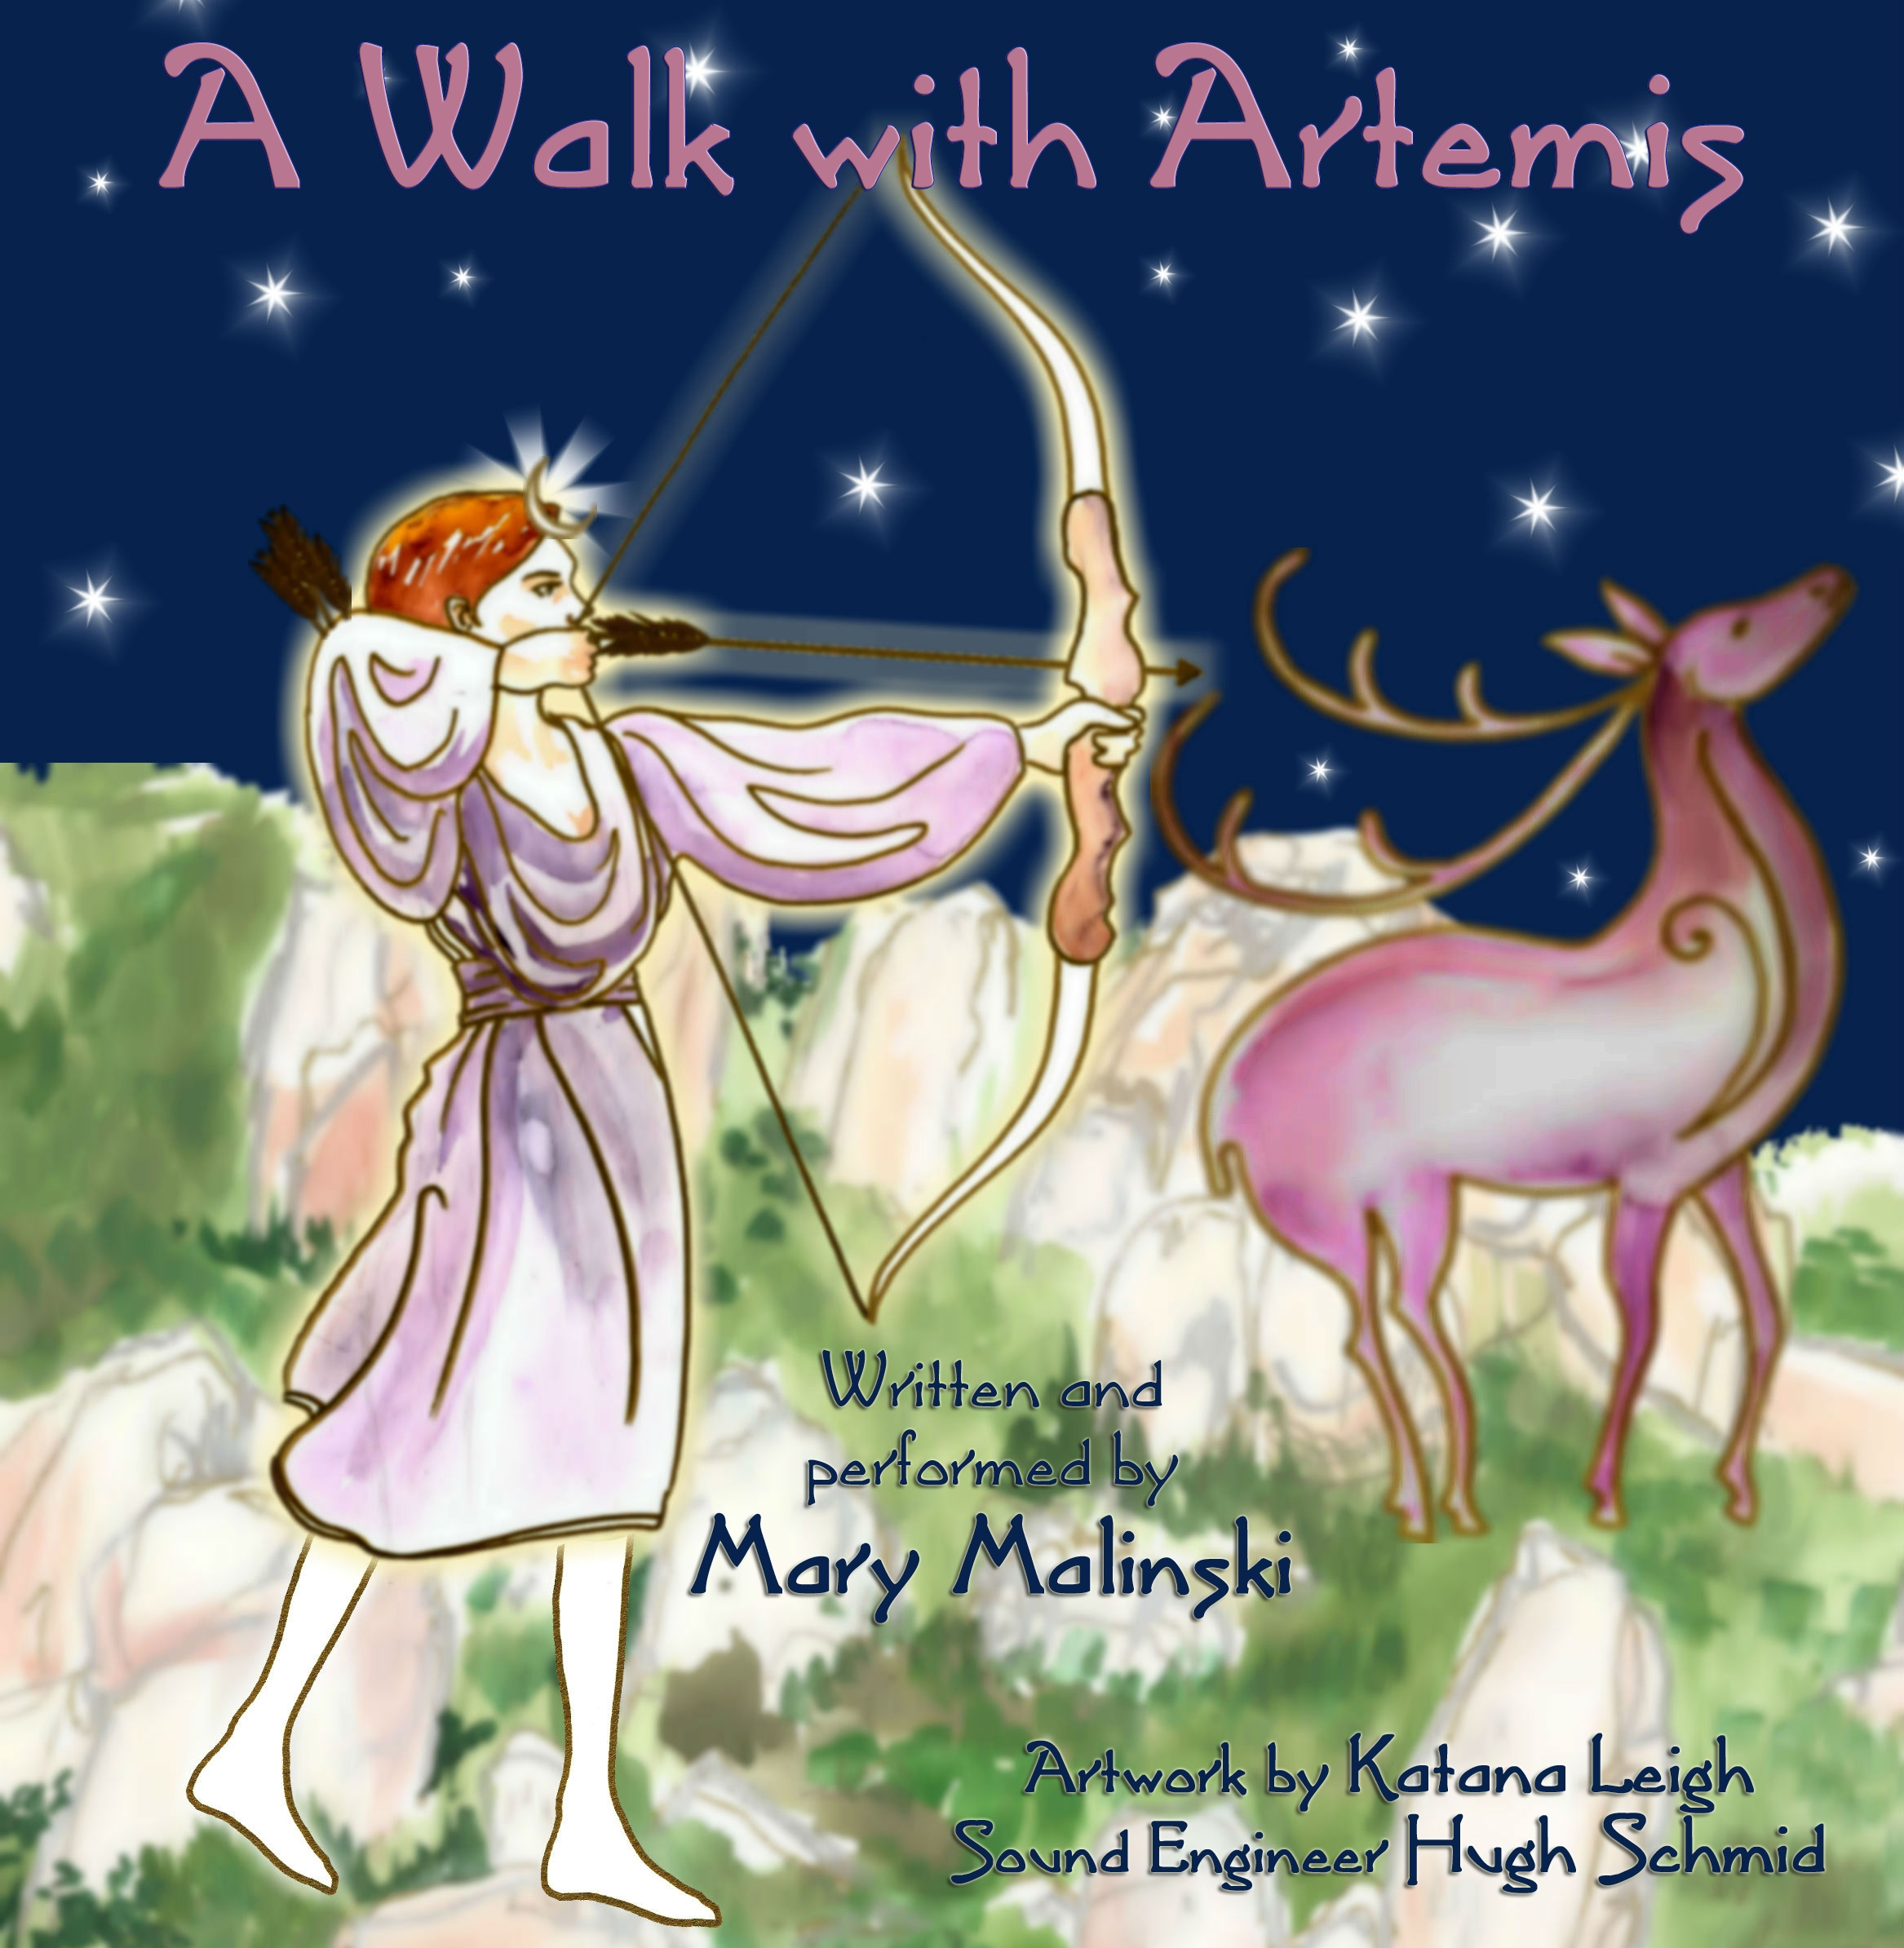 walk with artemis guided meditation